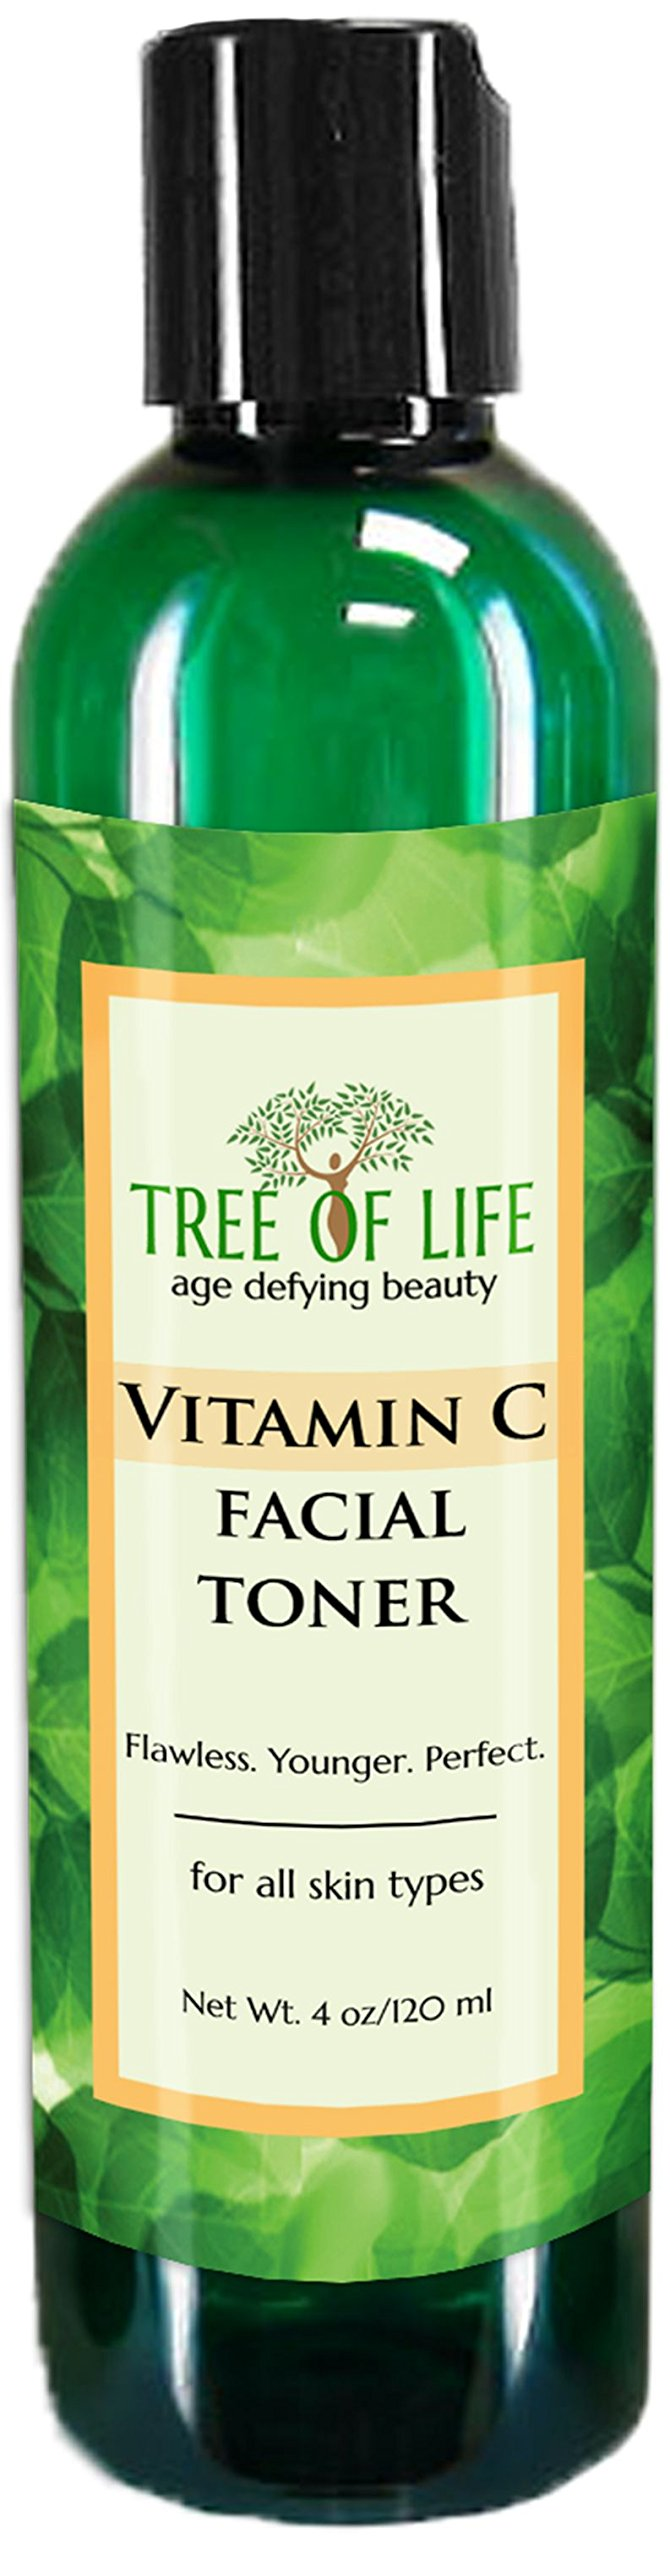 Vitamin C Facial Toner Pore Minimizing Rejuvenator by Flawless. Younger. Perfect.